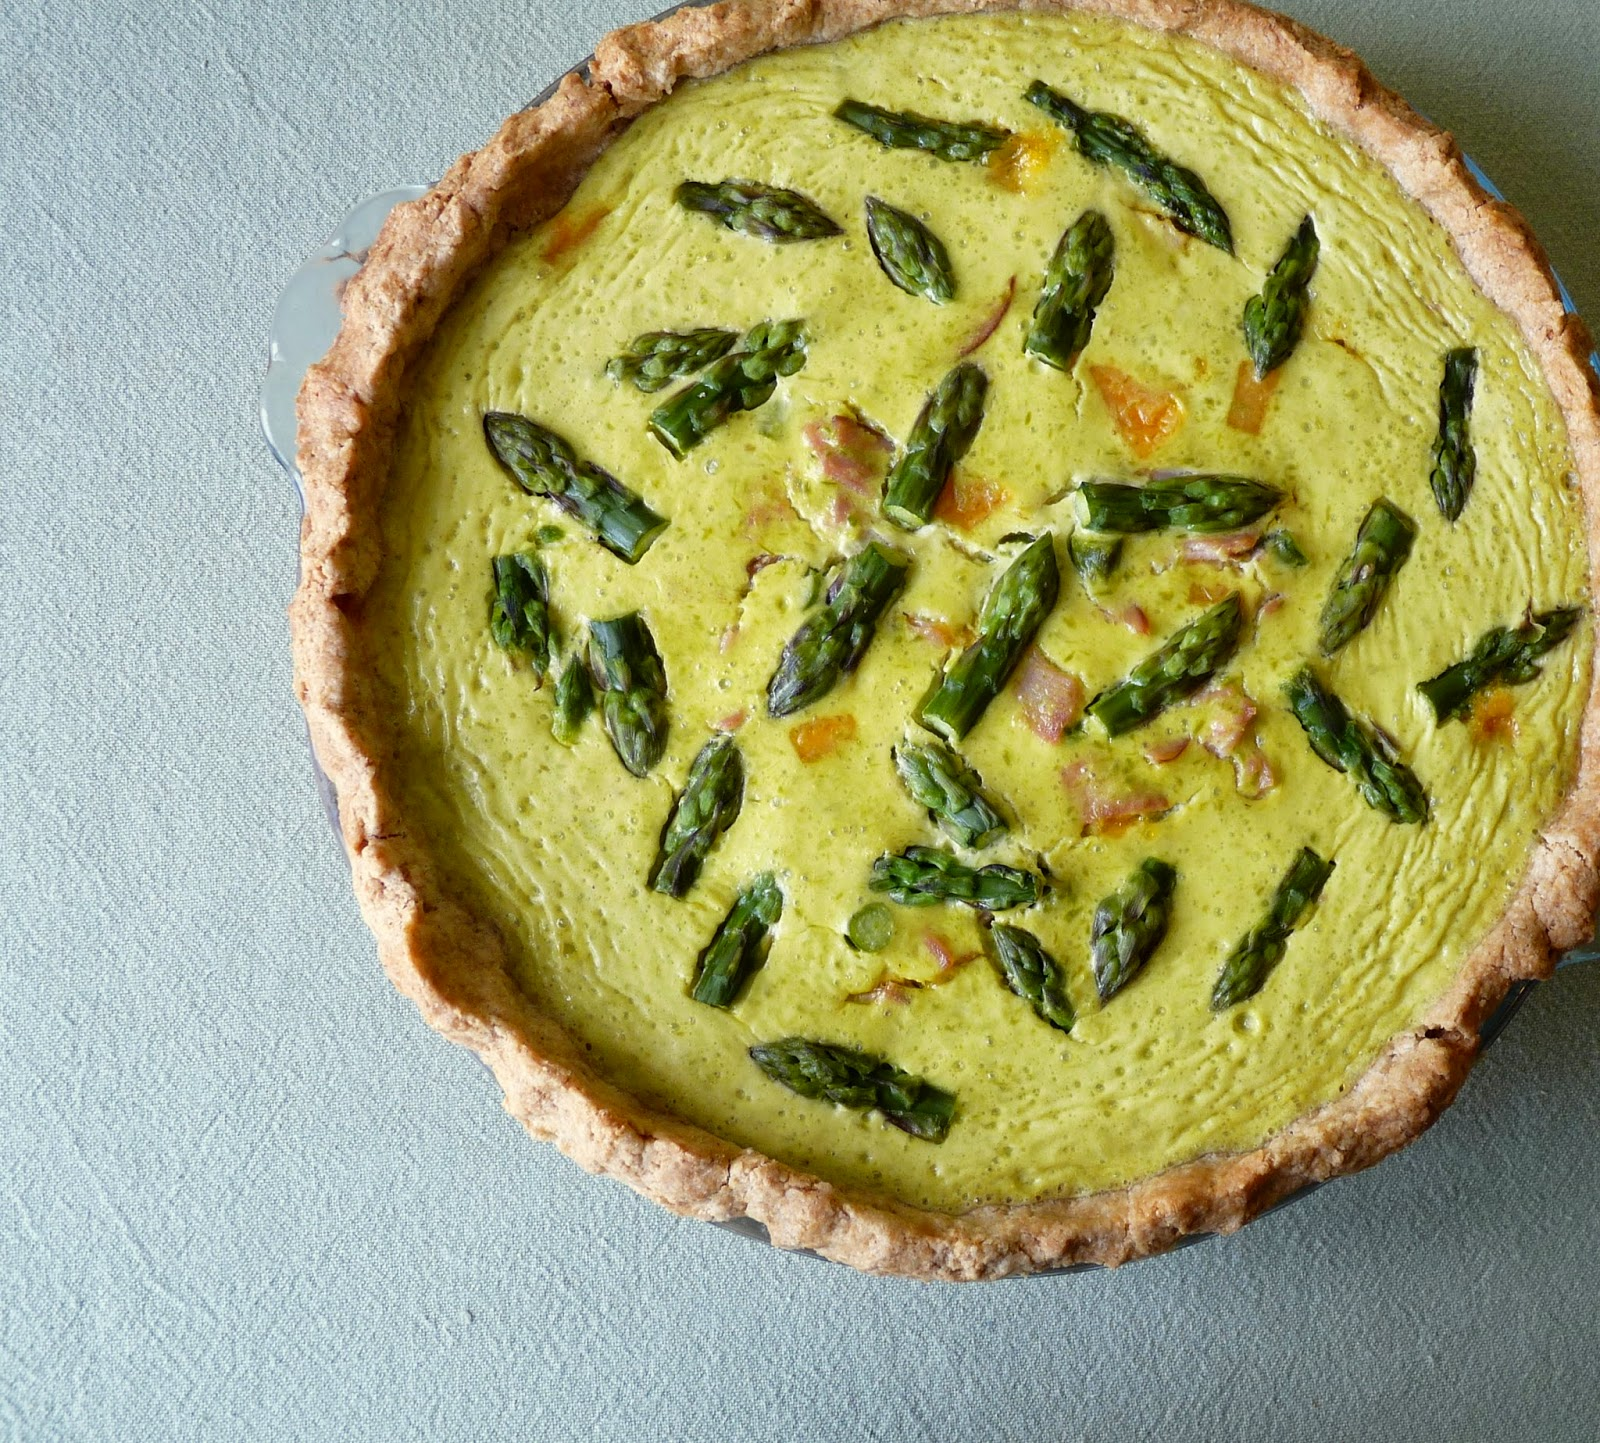 Creamy Asparagus Quiche with Ham and Cheddar